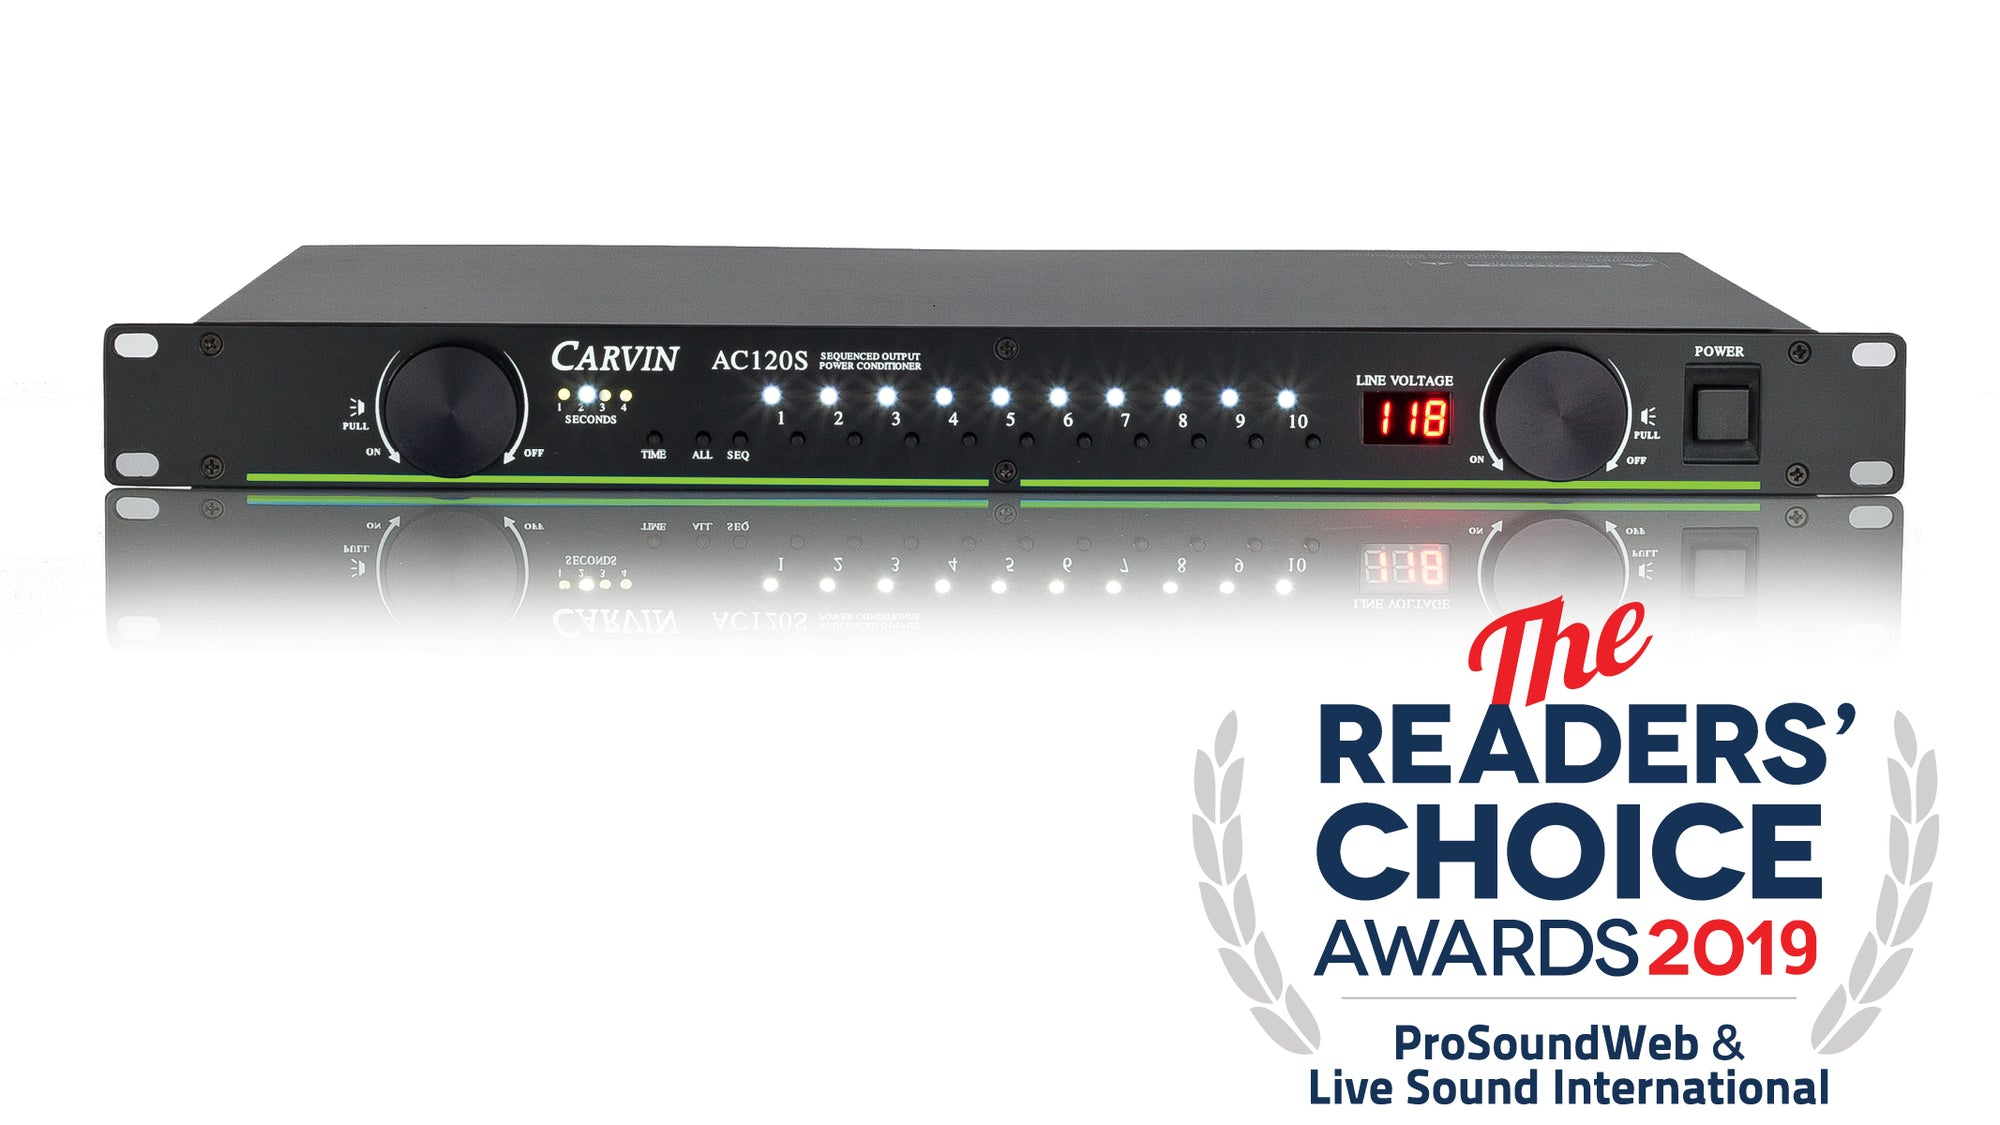 carvin ac120s power conditioner wins the 2019 reader's choice award from prosoundweb and live sound international